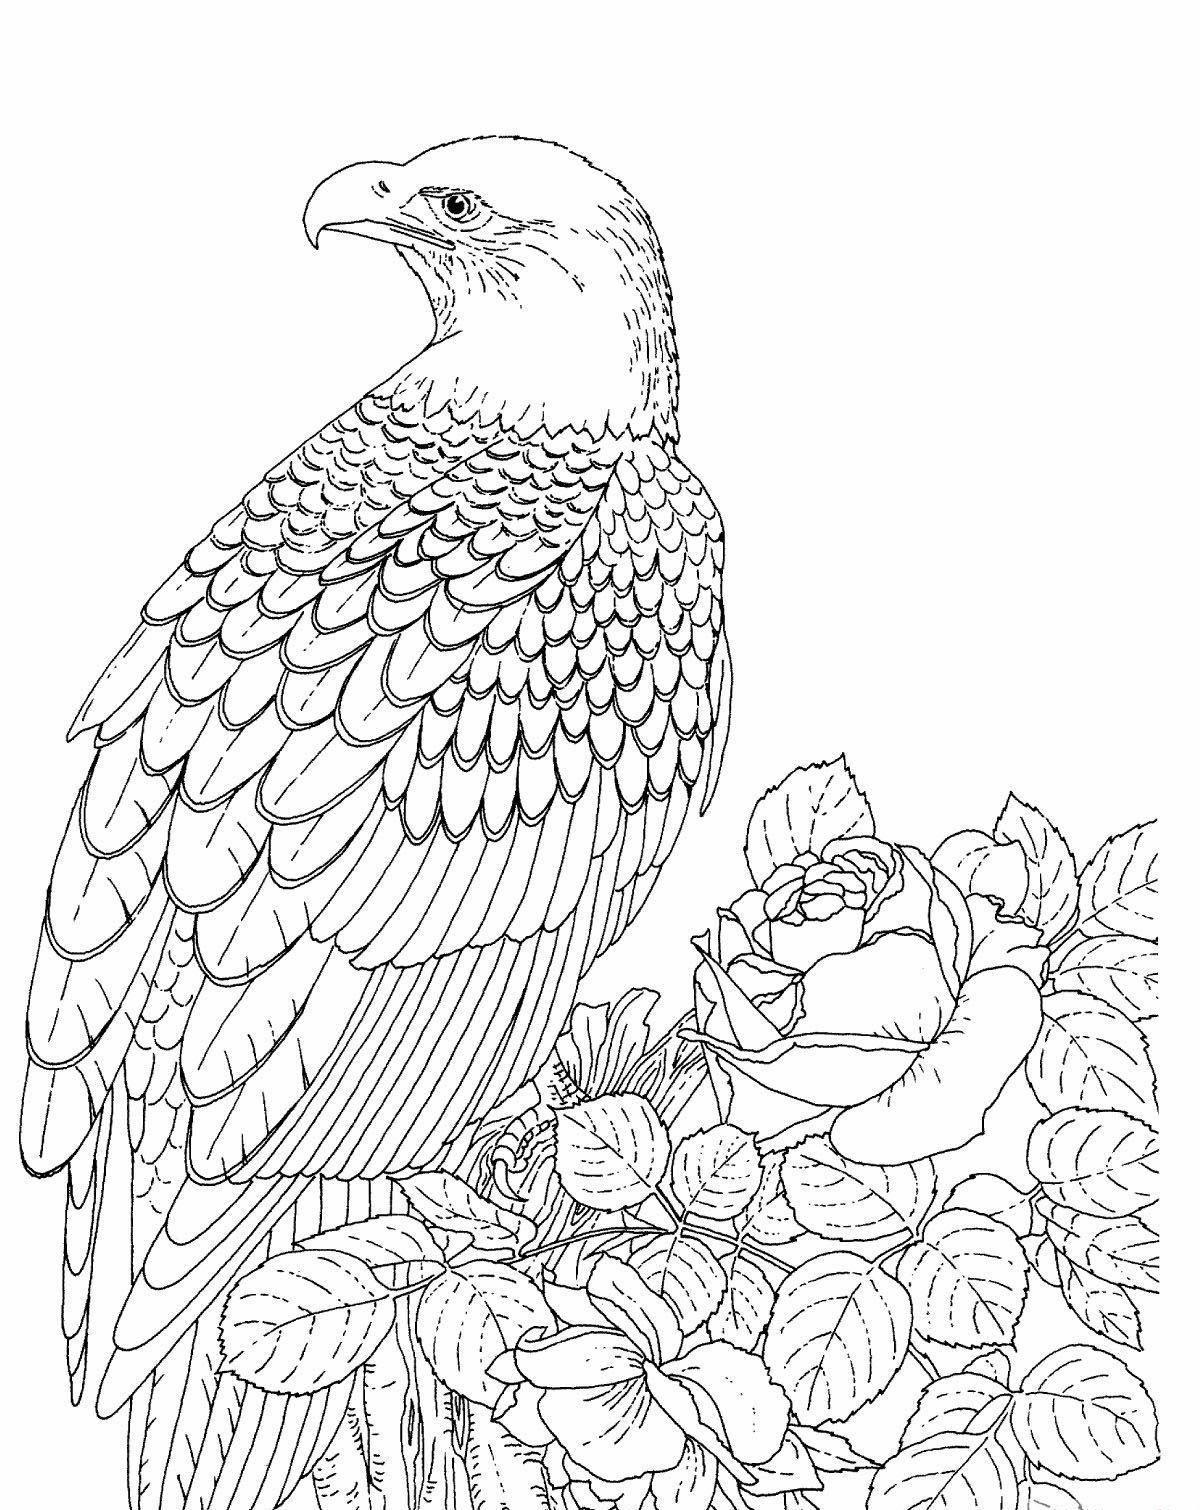 Free Bald Eagle Coloring Page on dragon coloring pages for adults